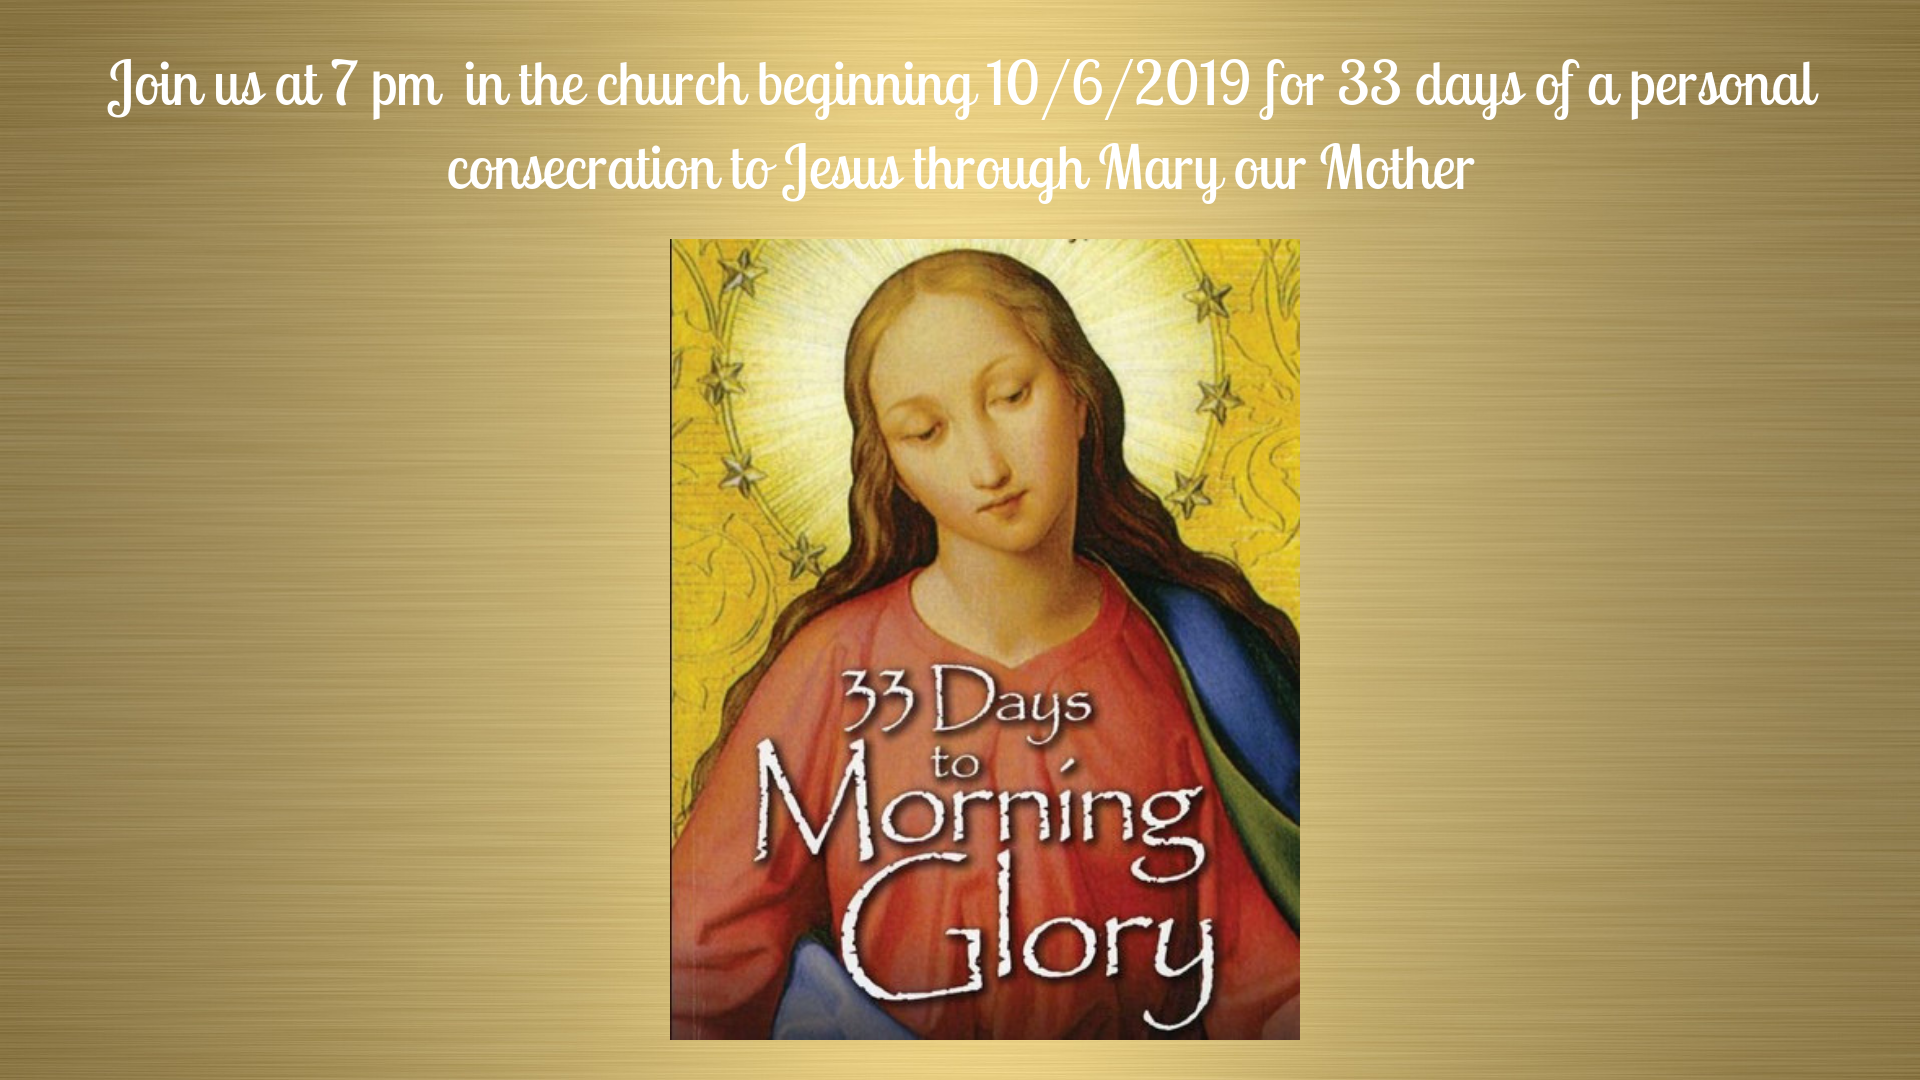 7 - 8pm Consecration to Jesus through Mary